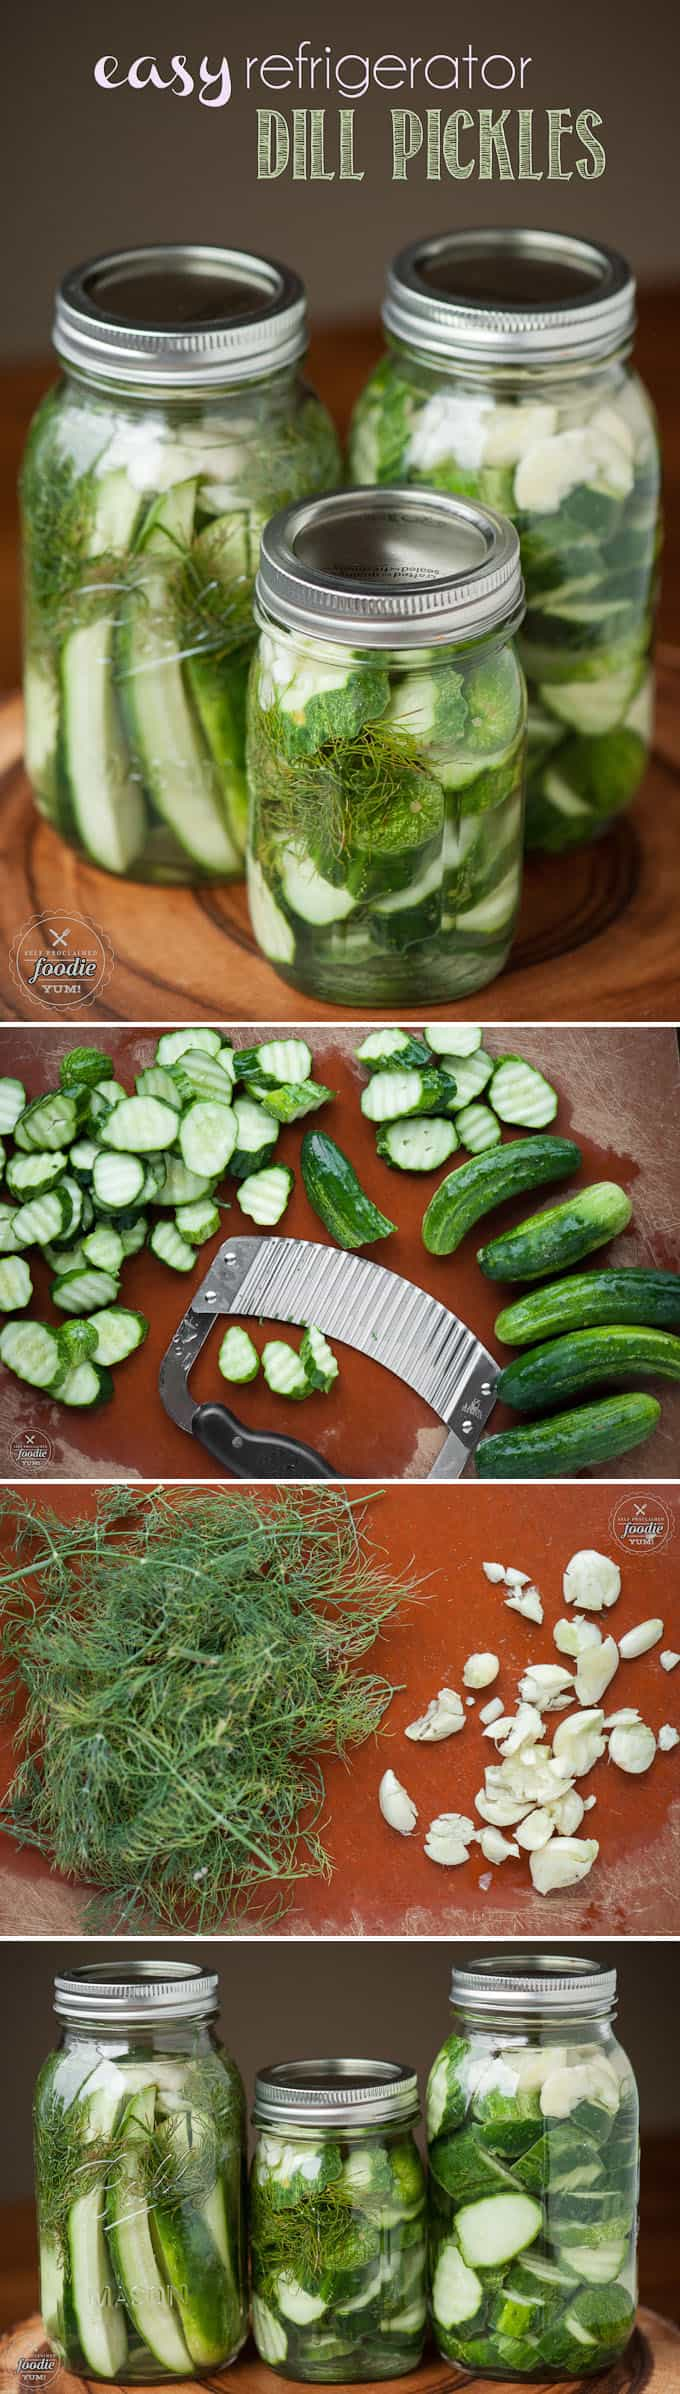 Easy Refrigerator Dill Pickles take only a few minutes to make. Once you make your own homemade dill pickles, you'll never buy store bought again. #pickles #refrigerator #homemade #dill #picklerecipe #quickpickles #easypickles